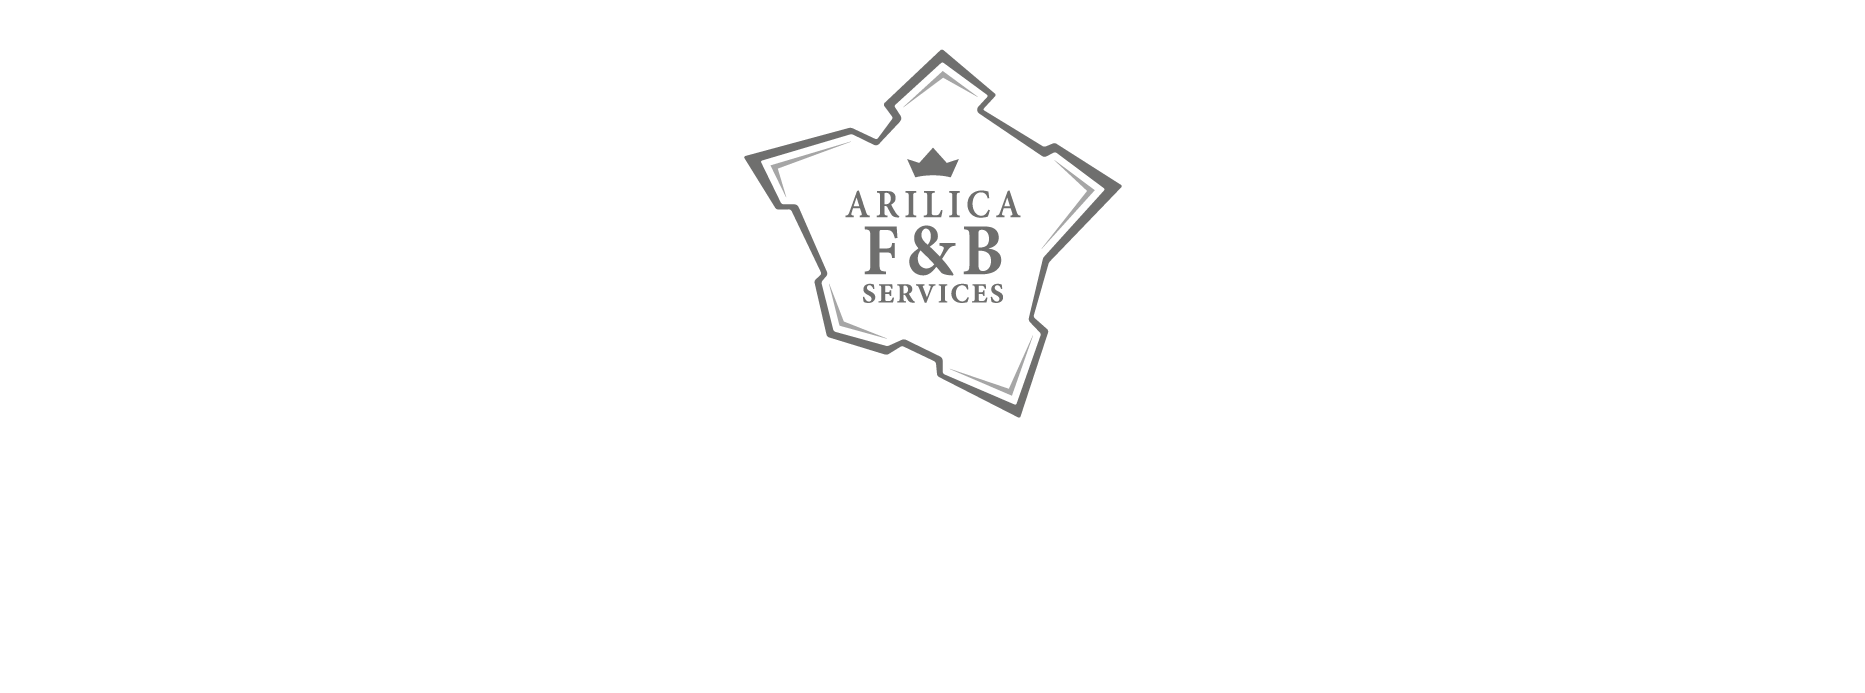 logo Arilica Food & Beverage Services